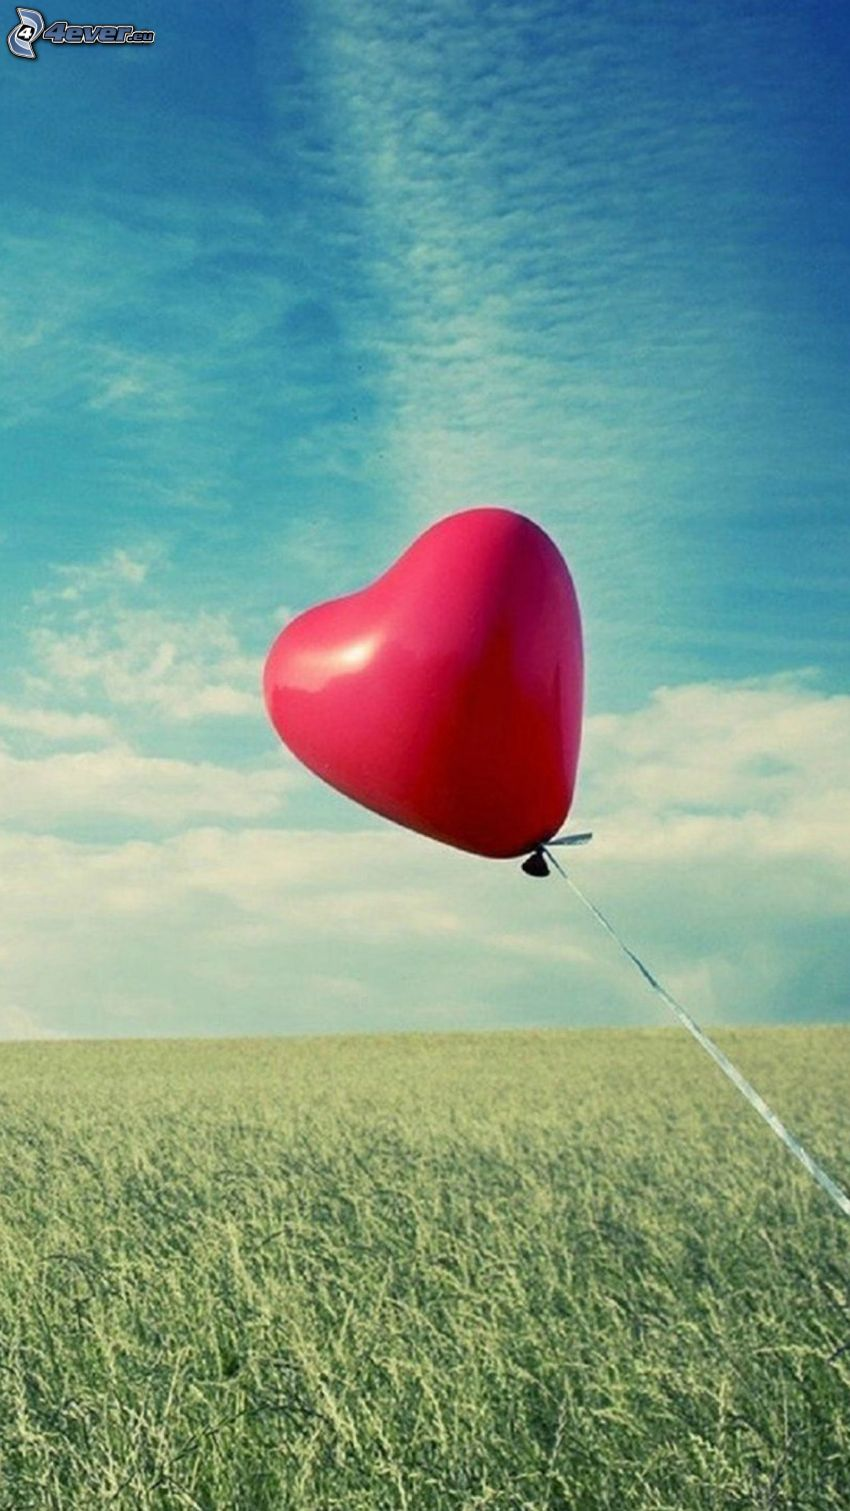 balloon, heart, meadow